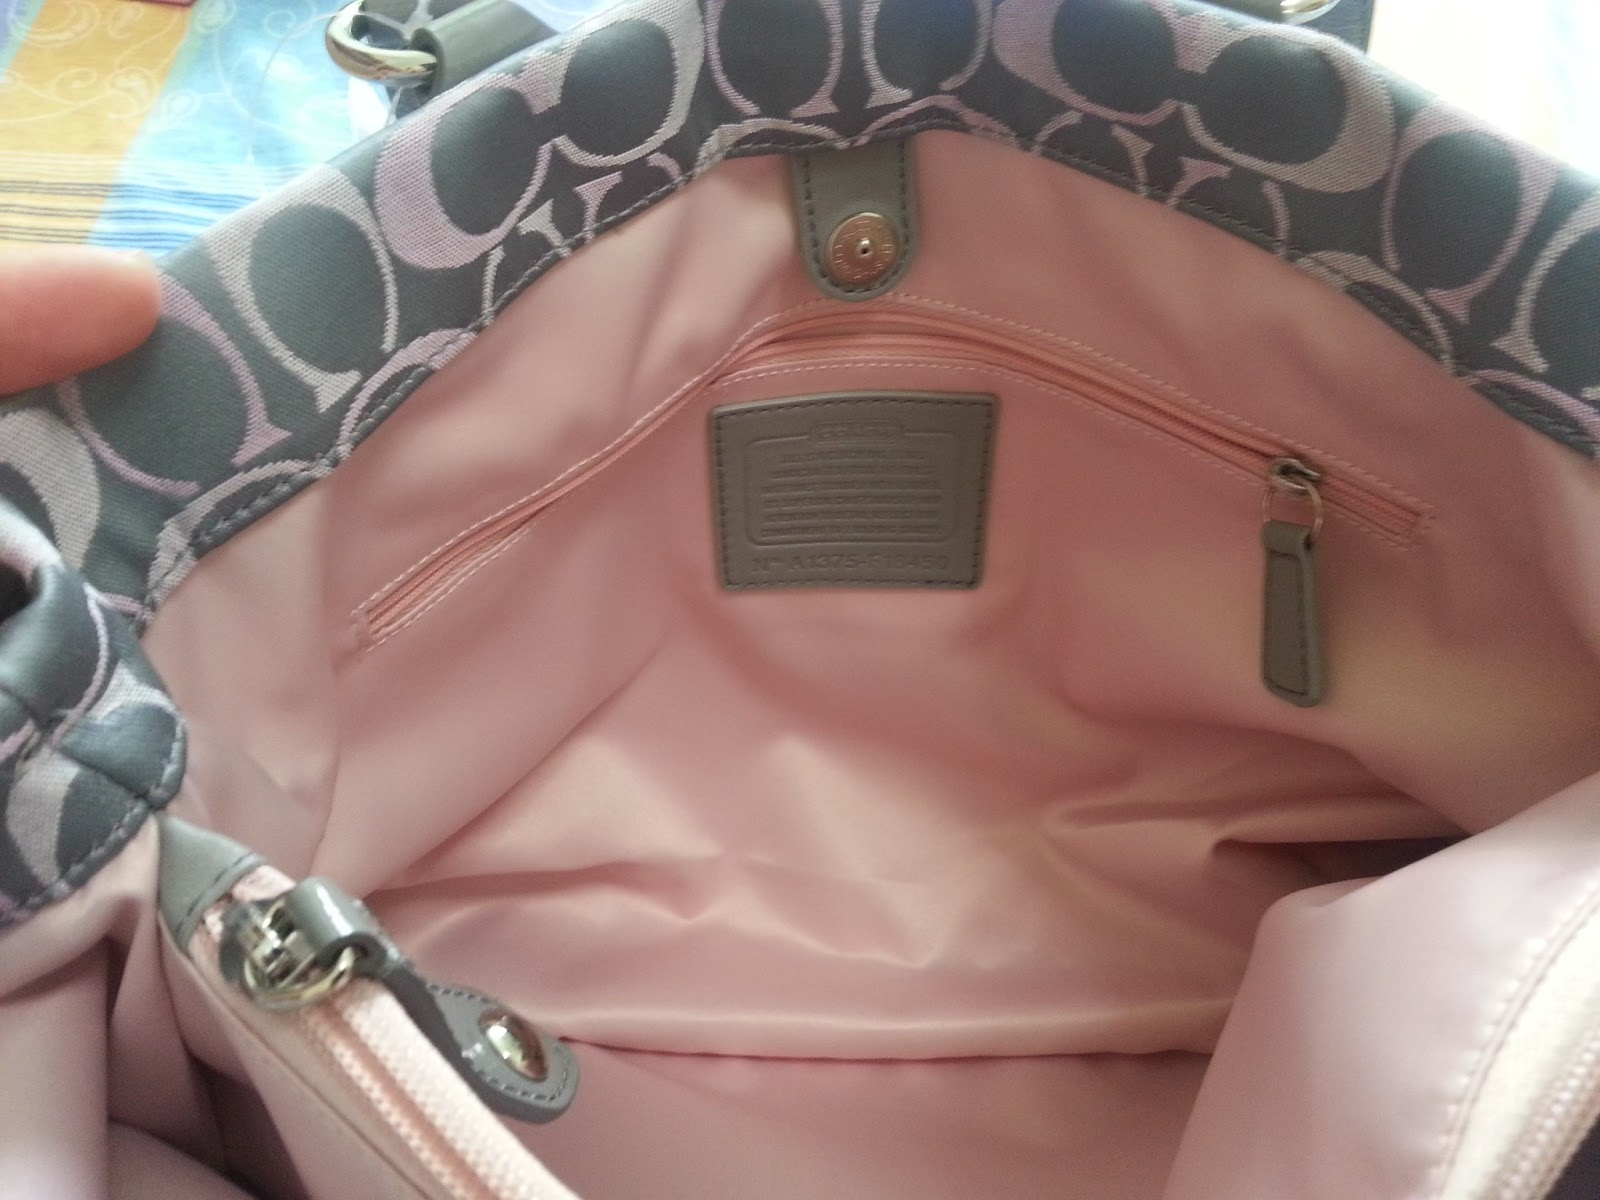 coach pink and gray purse aujs  COACH ASHLEY SIGNATURE CARRYALL BAG PURSE SILVER GRAY PINK F18450 ASHLEY 3  COLOR SIGNATURE CARRY ALL STYLE F18450 Three color signature sateen fabric  with